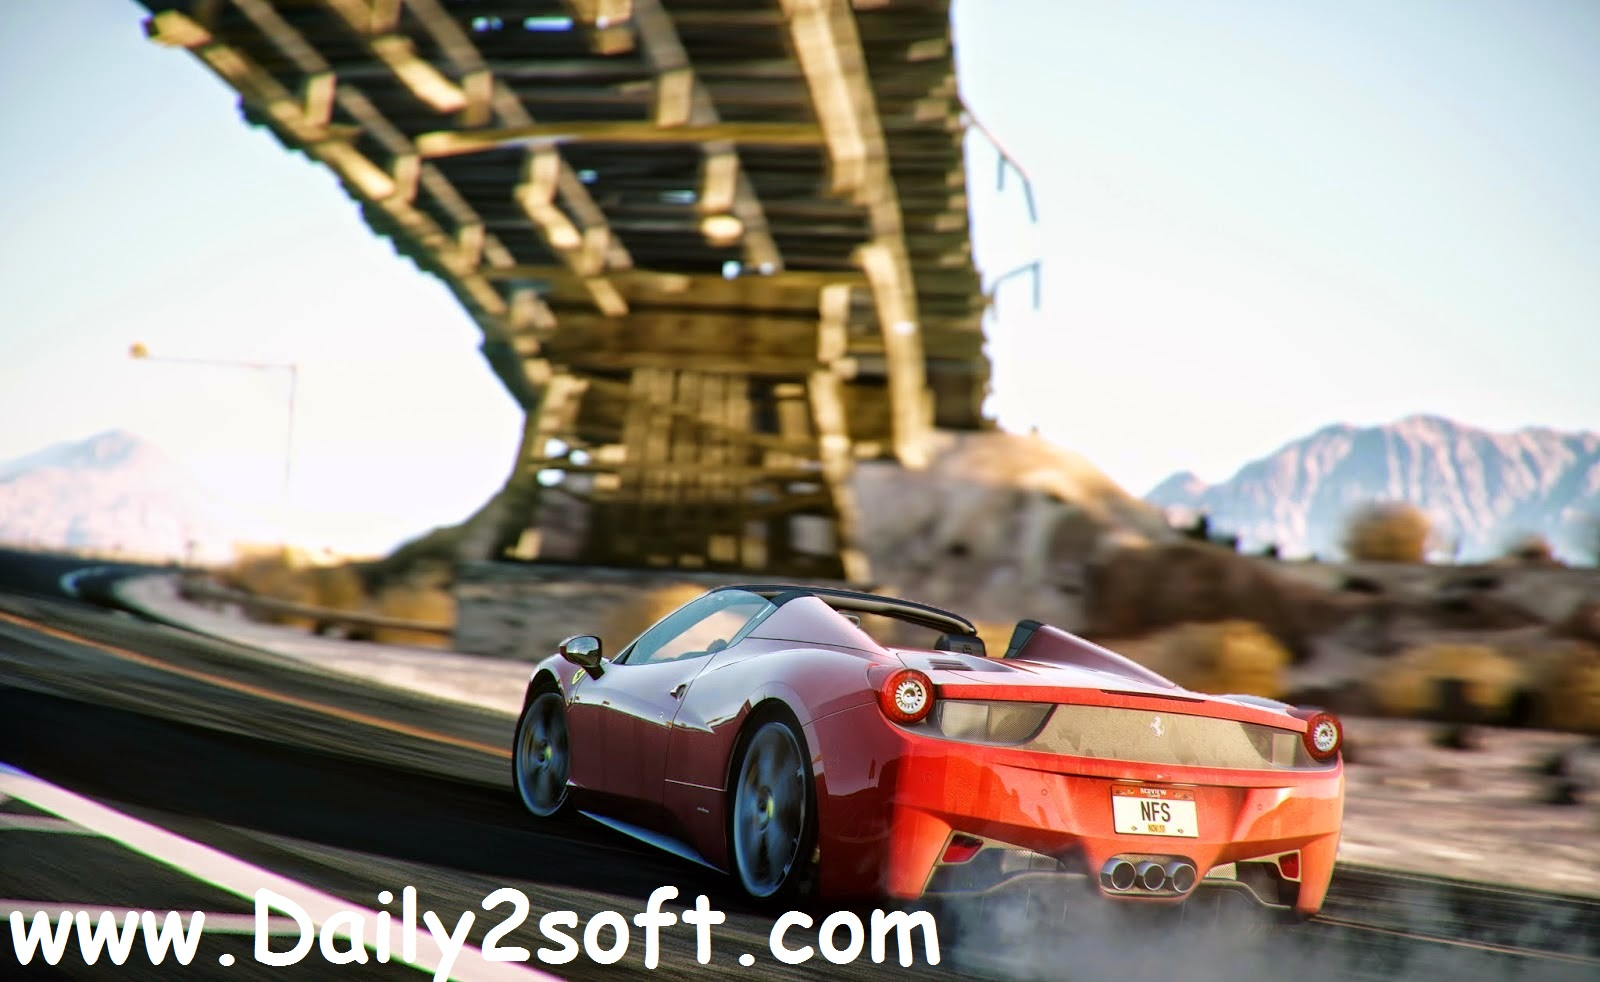 NFS Rivals Free Download Pc Repack Game LATEST VERSION IS Here!!